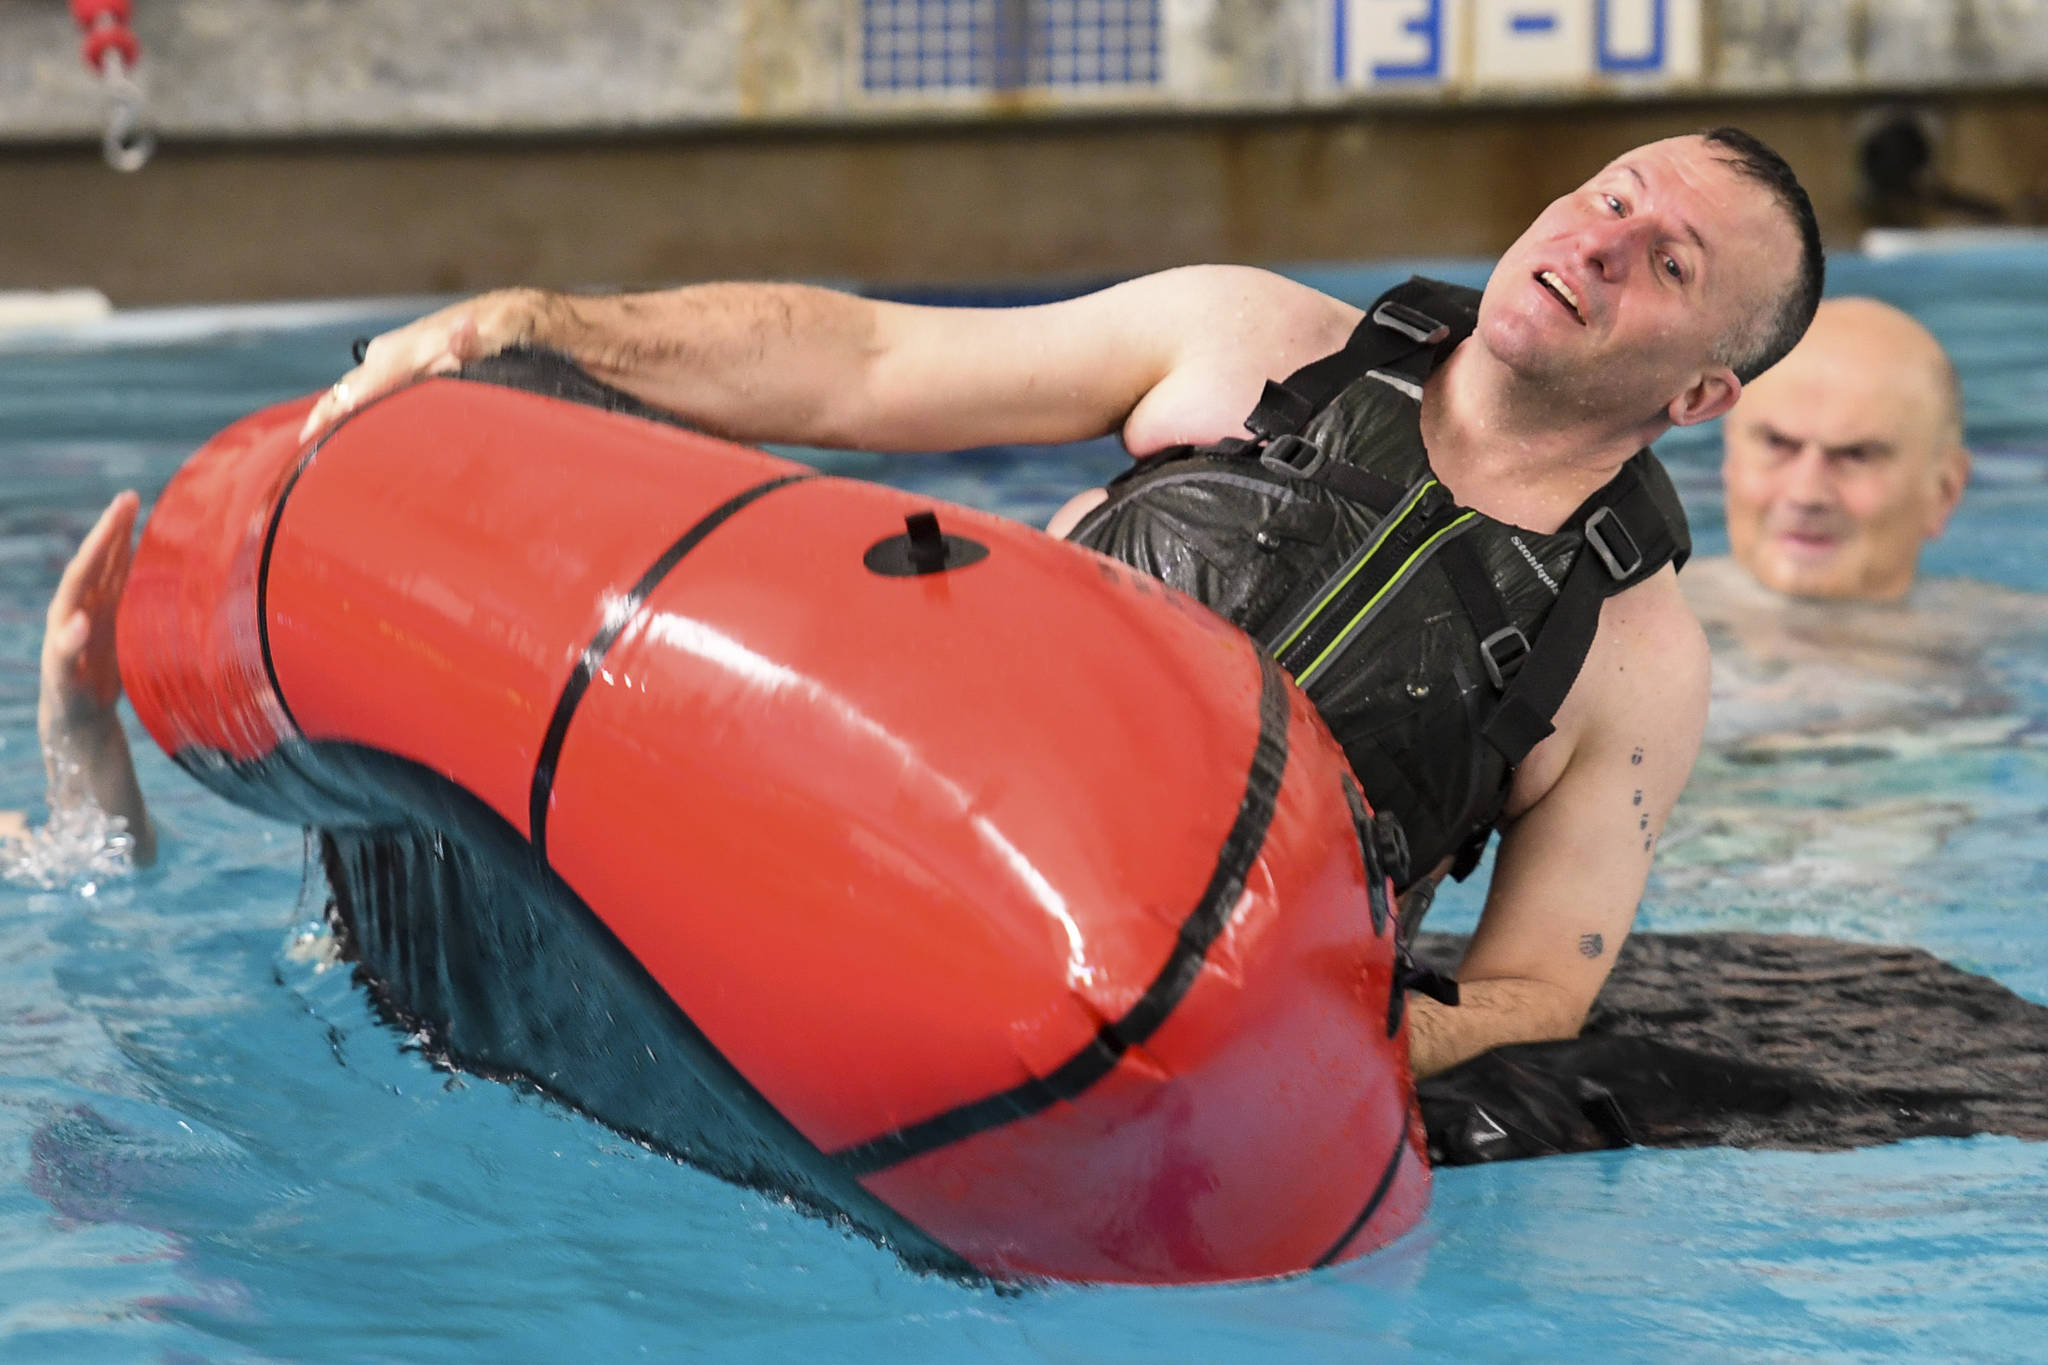 Lt. Cmdr. Scott Shields, a Coast Guard officer stationed in Juneau, flips a small boat during a boating safety training class at the Augustus Brown Swimming Pool on Tuesday, Nov. 19, 2019. The class will qualify the members to teach students around the state about the use and importance of life vests. (Michael Penn | Juneau Empire)